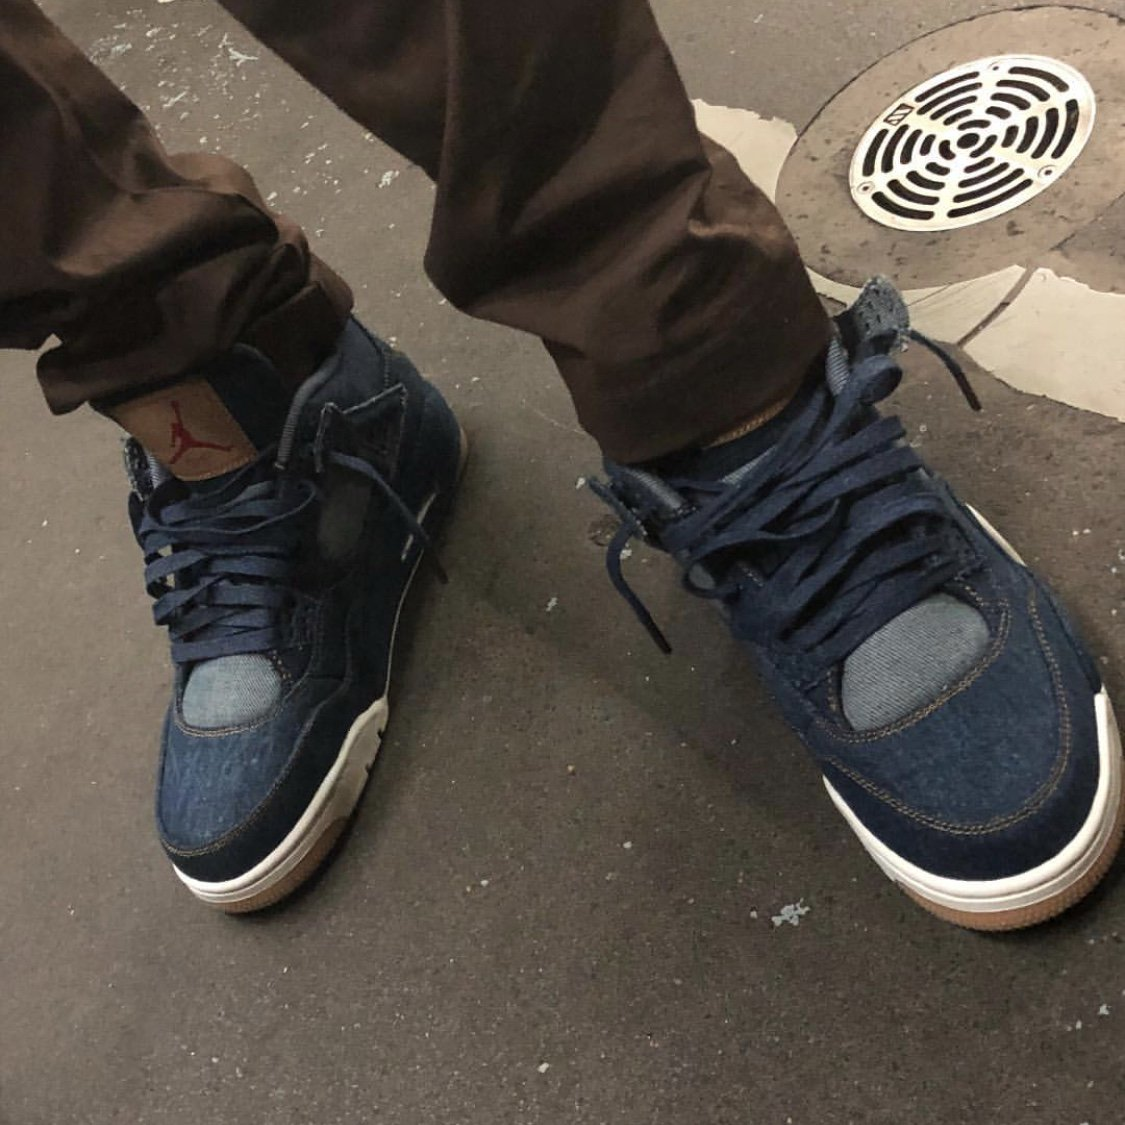 Levis Air Jordan 4 Denim AO2571-401